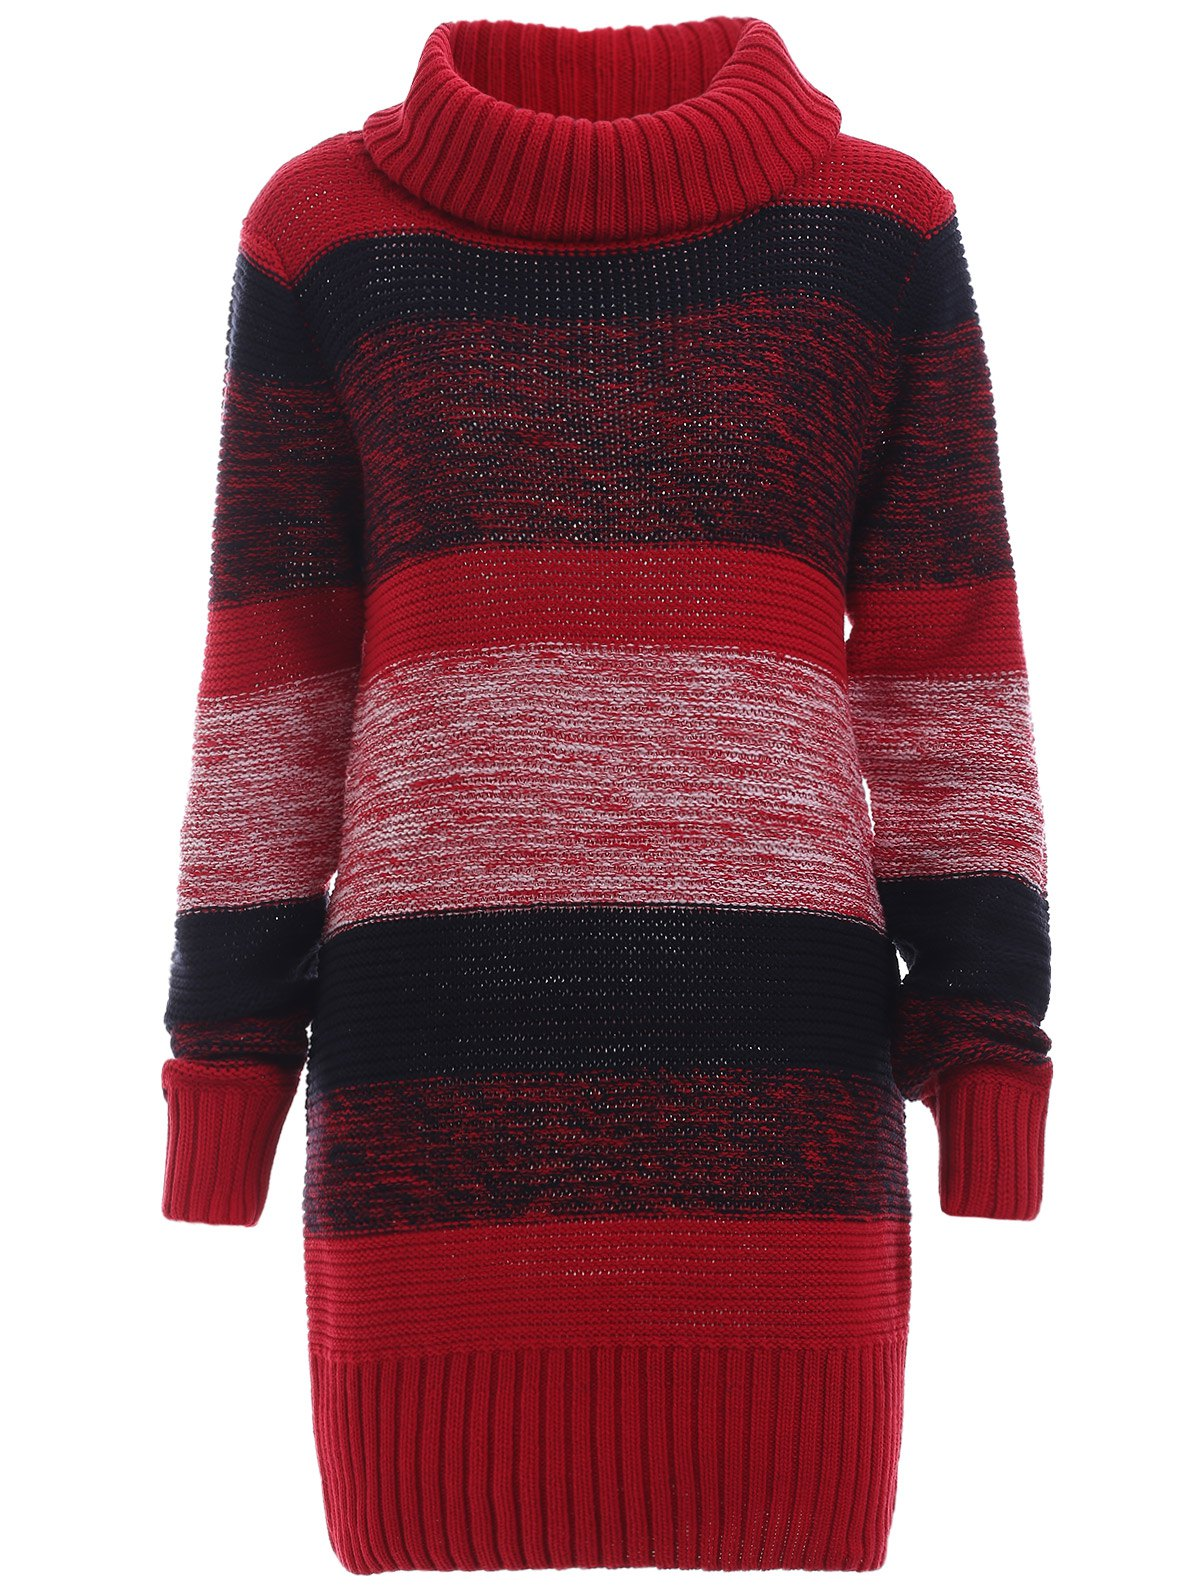 Color Block Wool Blend Sheath Sweater Dress - RED L